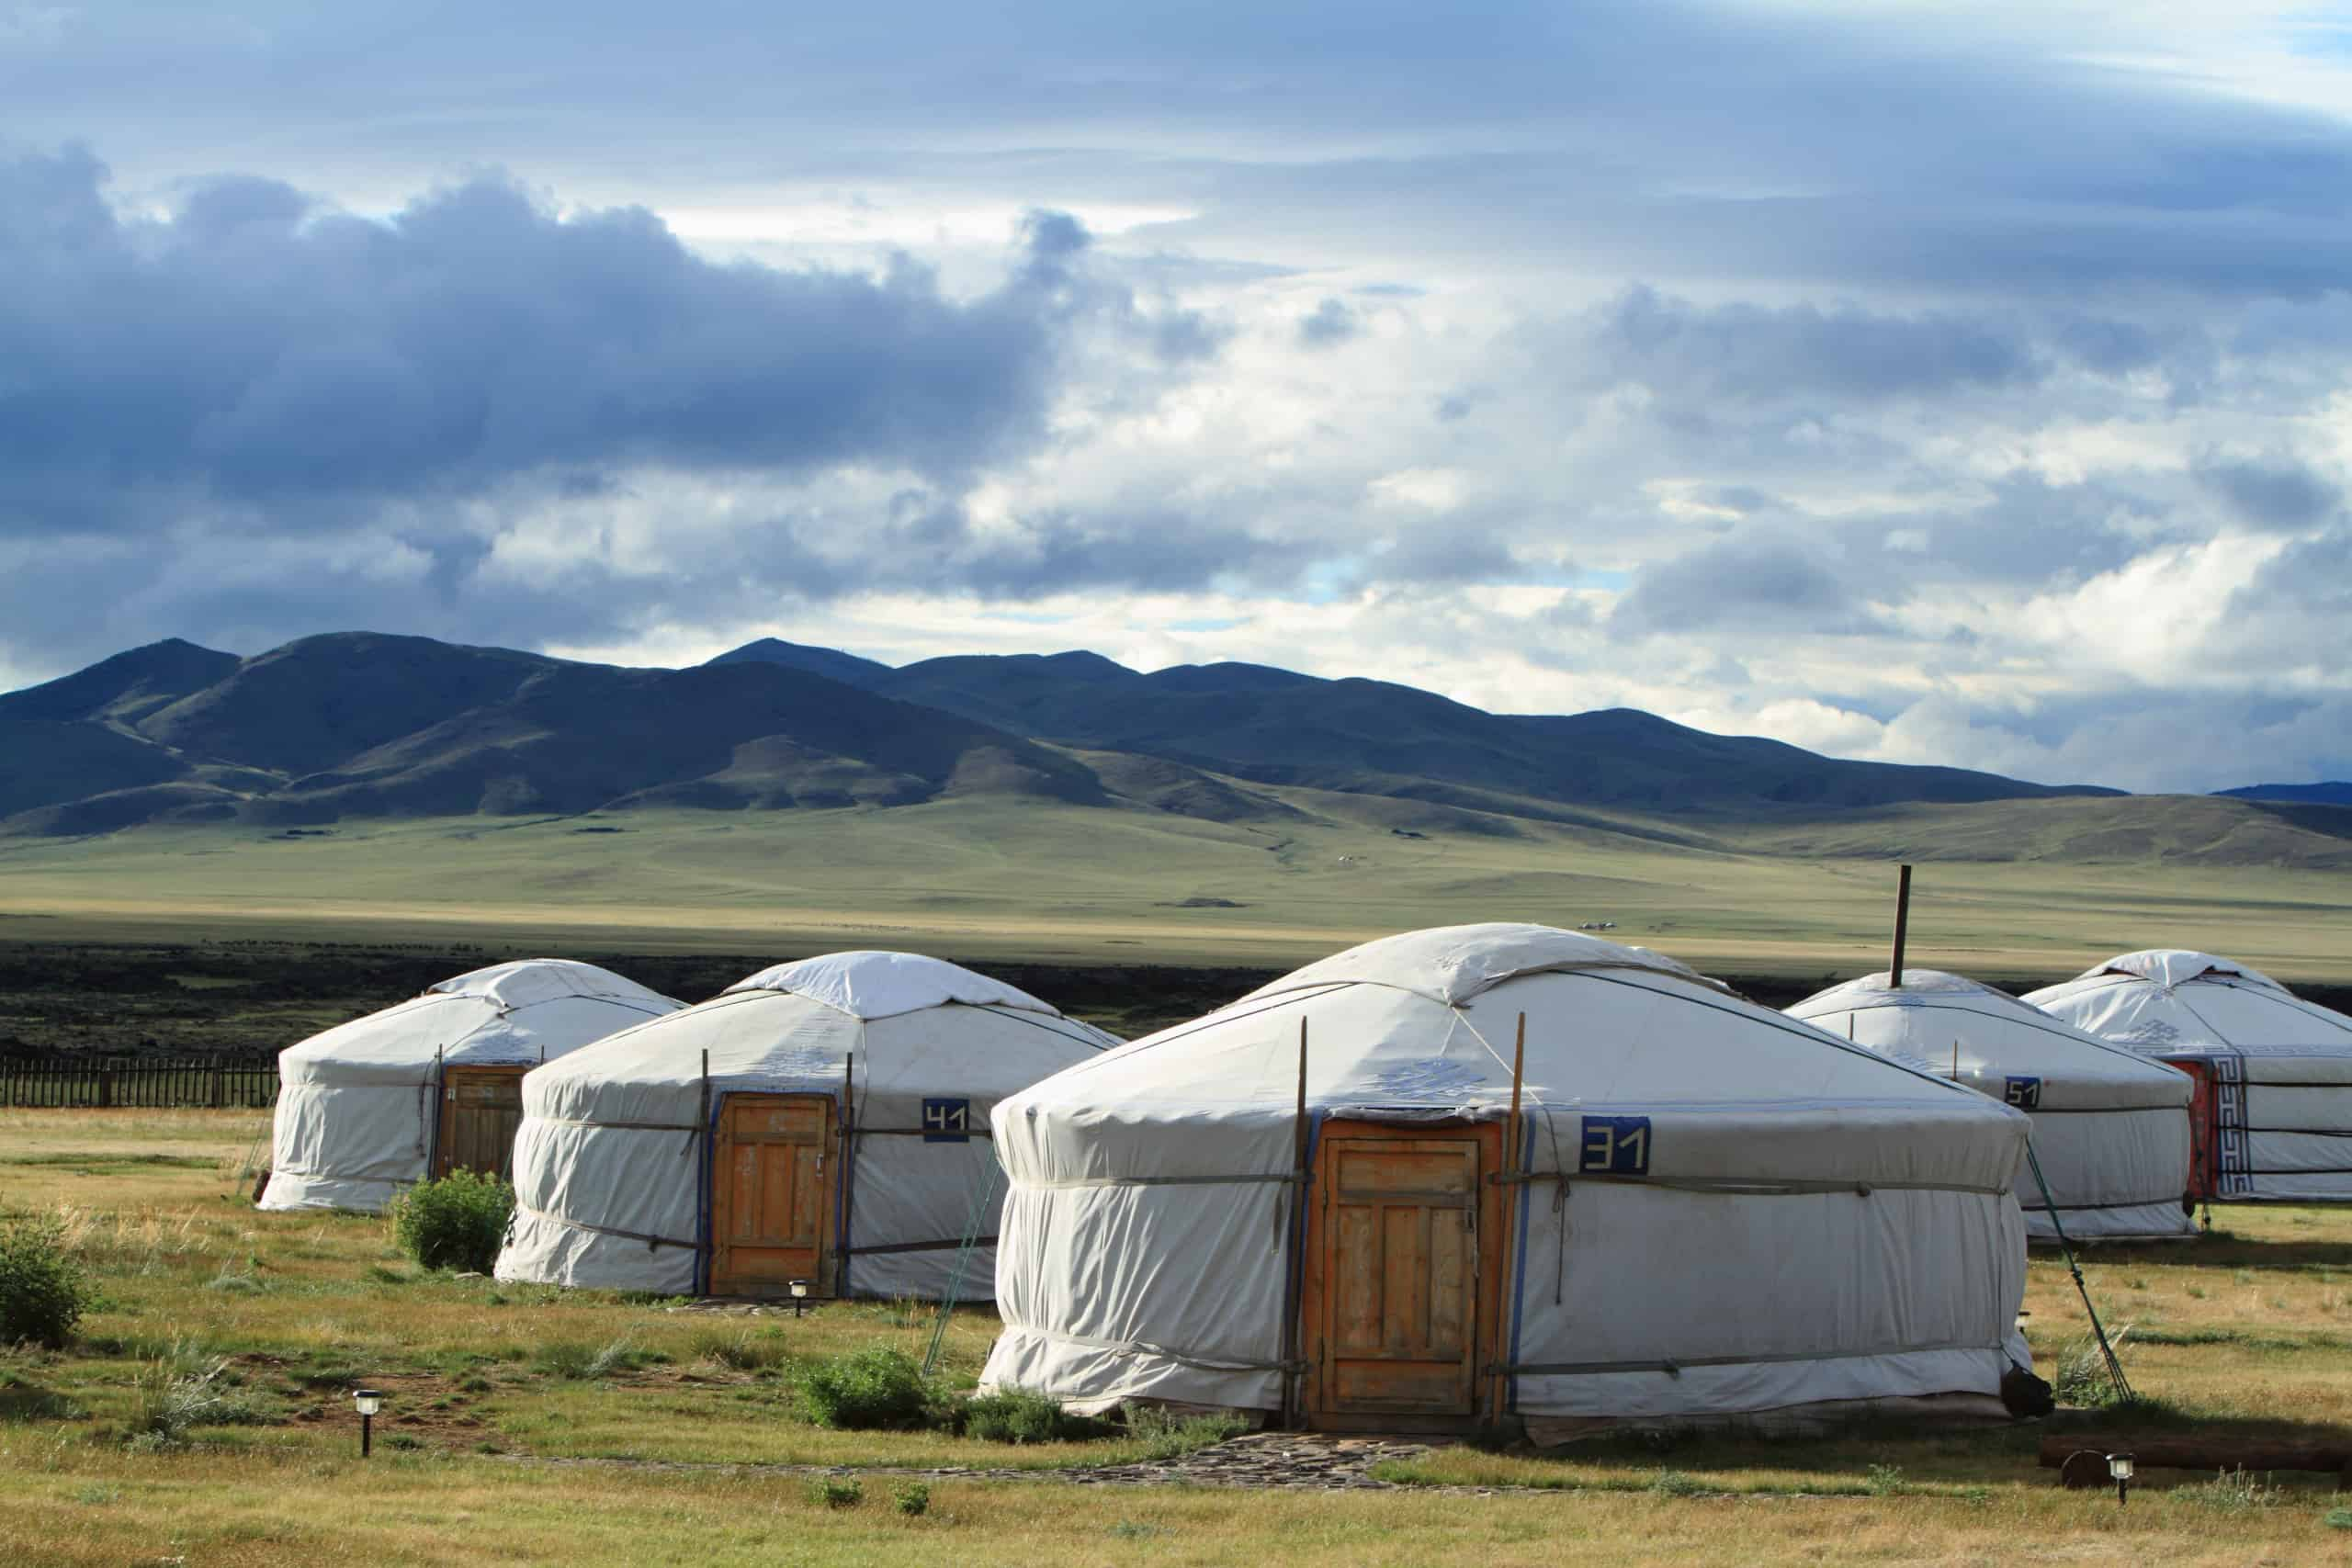 Ten interesting facts about Mongolia